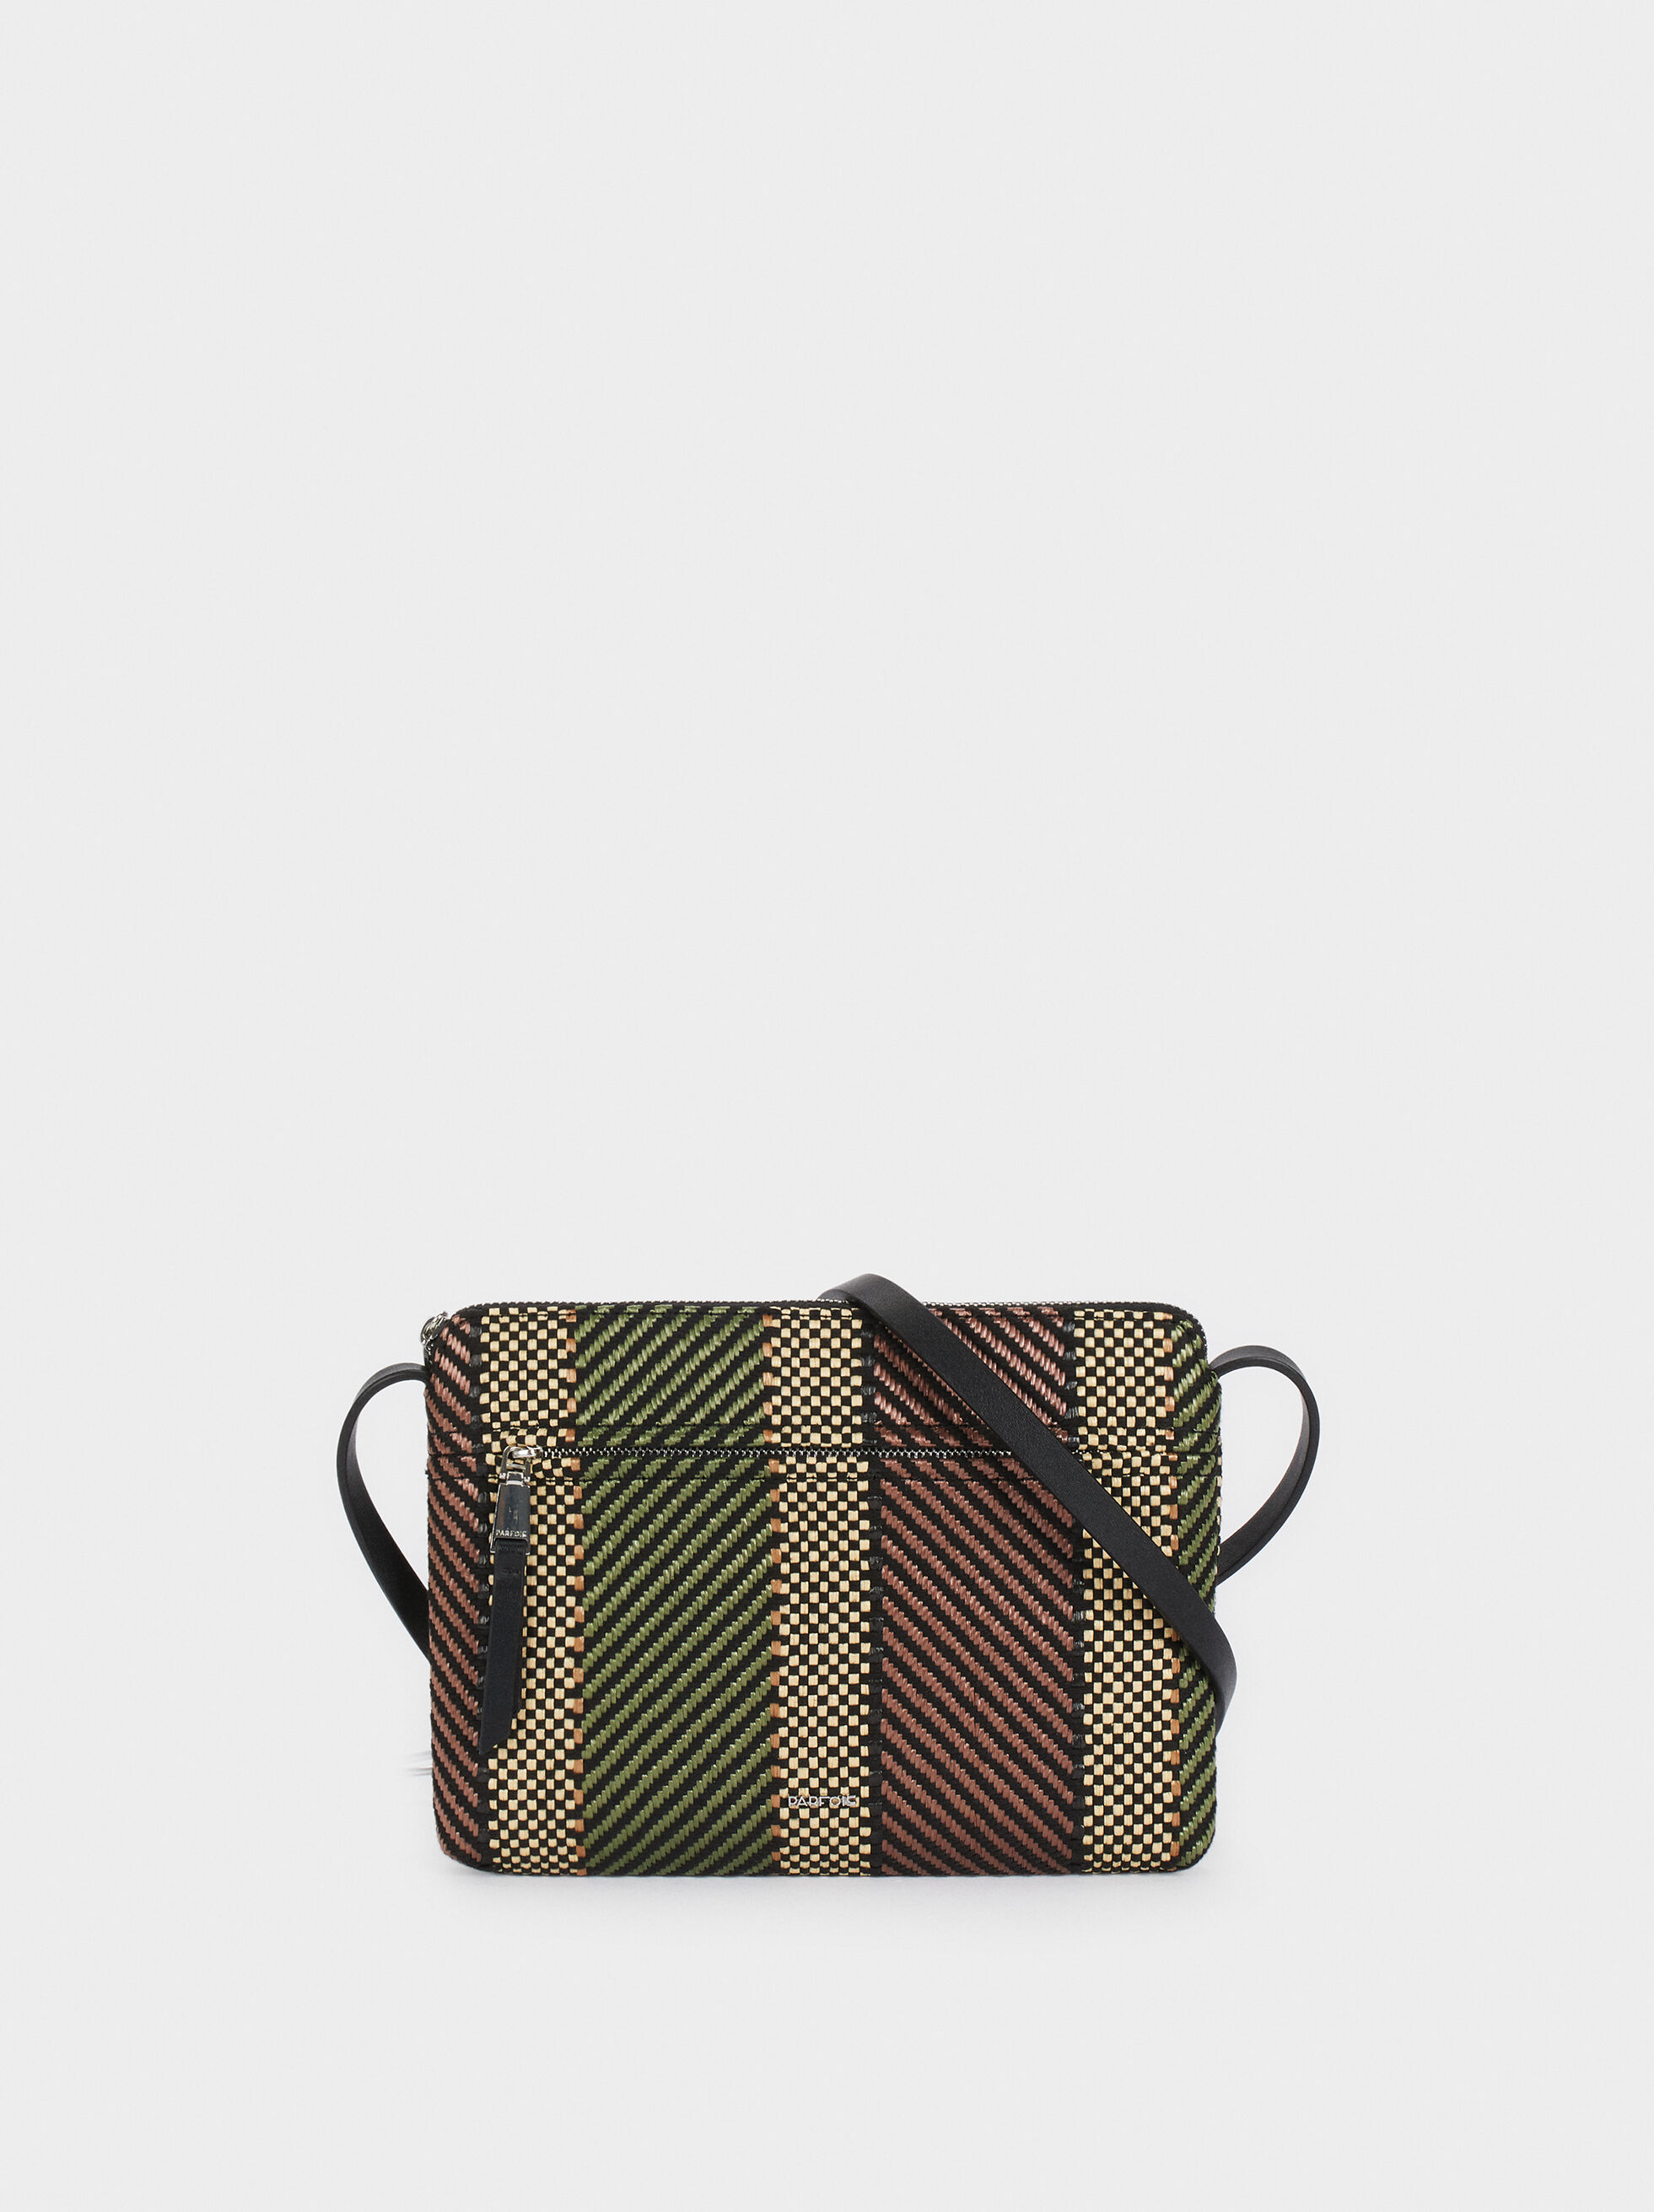 Braided Fabric Crossbody Bag, , hi-res